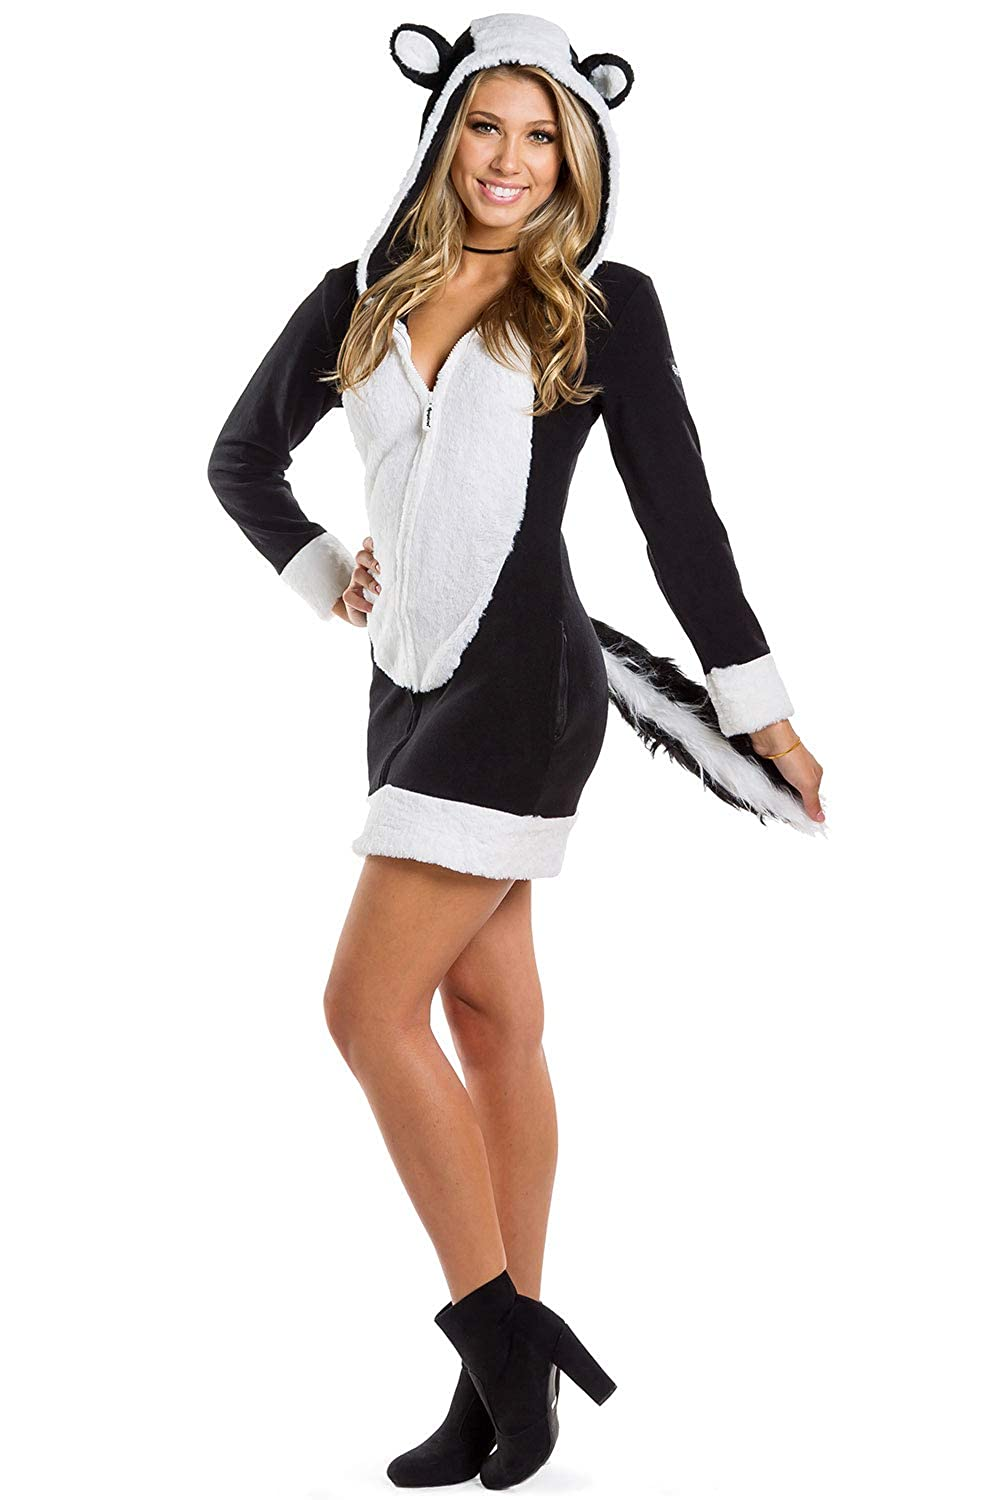 Amazon.com: Tipsy Elves Cute Skunk Costume Dress for Halloween - Sexy Skunk  Dress for Women Black: Clothing